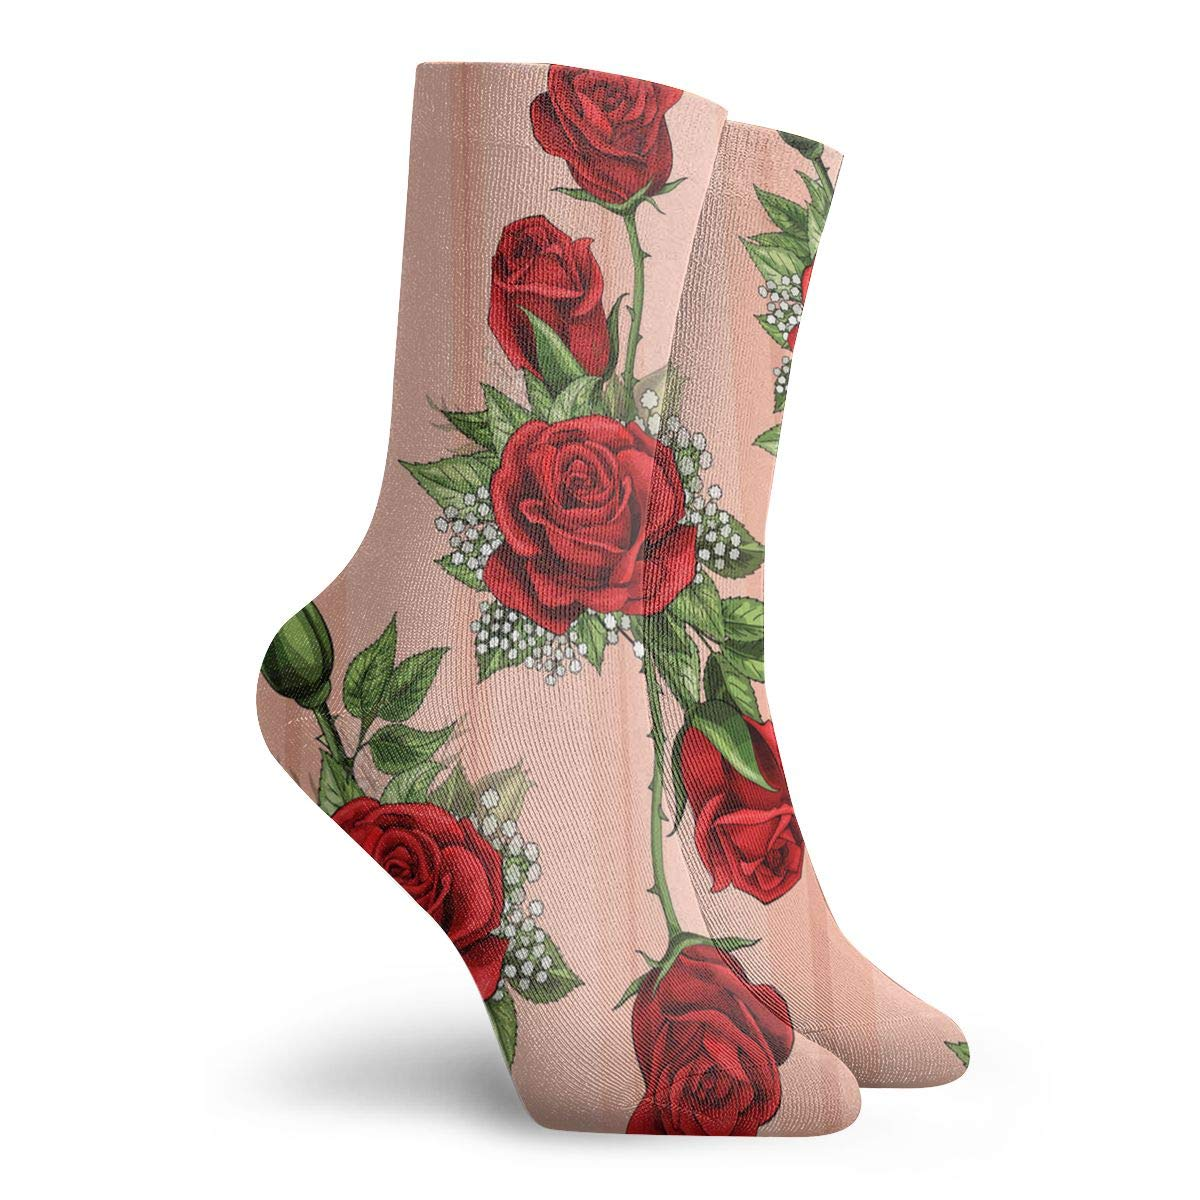 SARA NELL Novelty Funny Crazy Crew Sock Red Rose Flower Bouquet Spreads Creeper Elements Printed Sport Athletic Socks 30cm Long Personalized Gift Socks